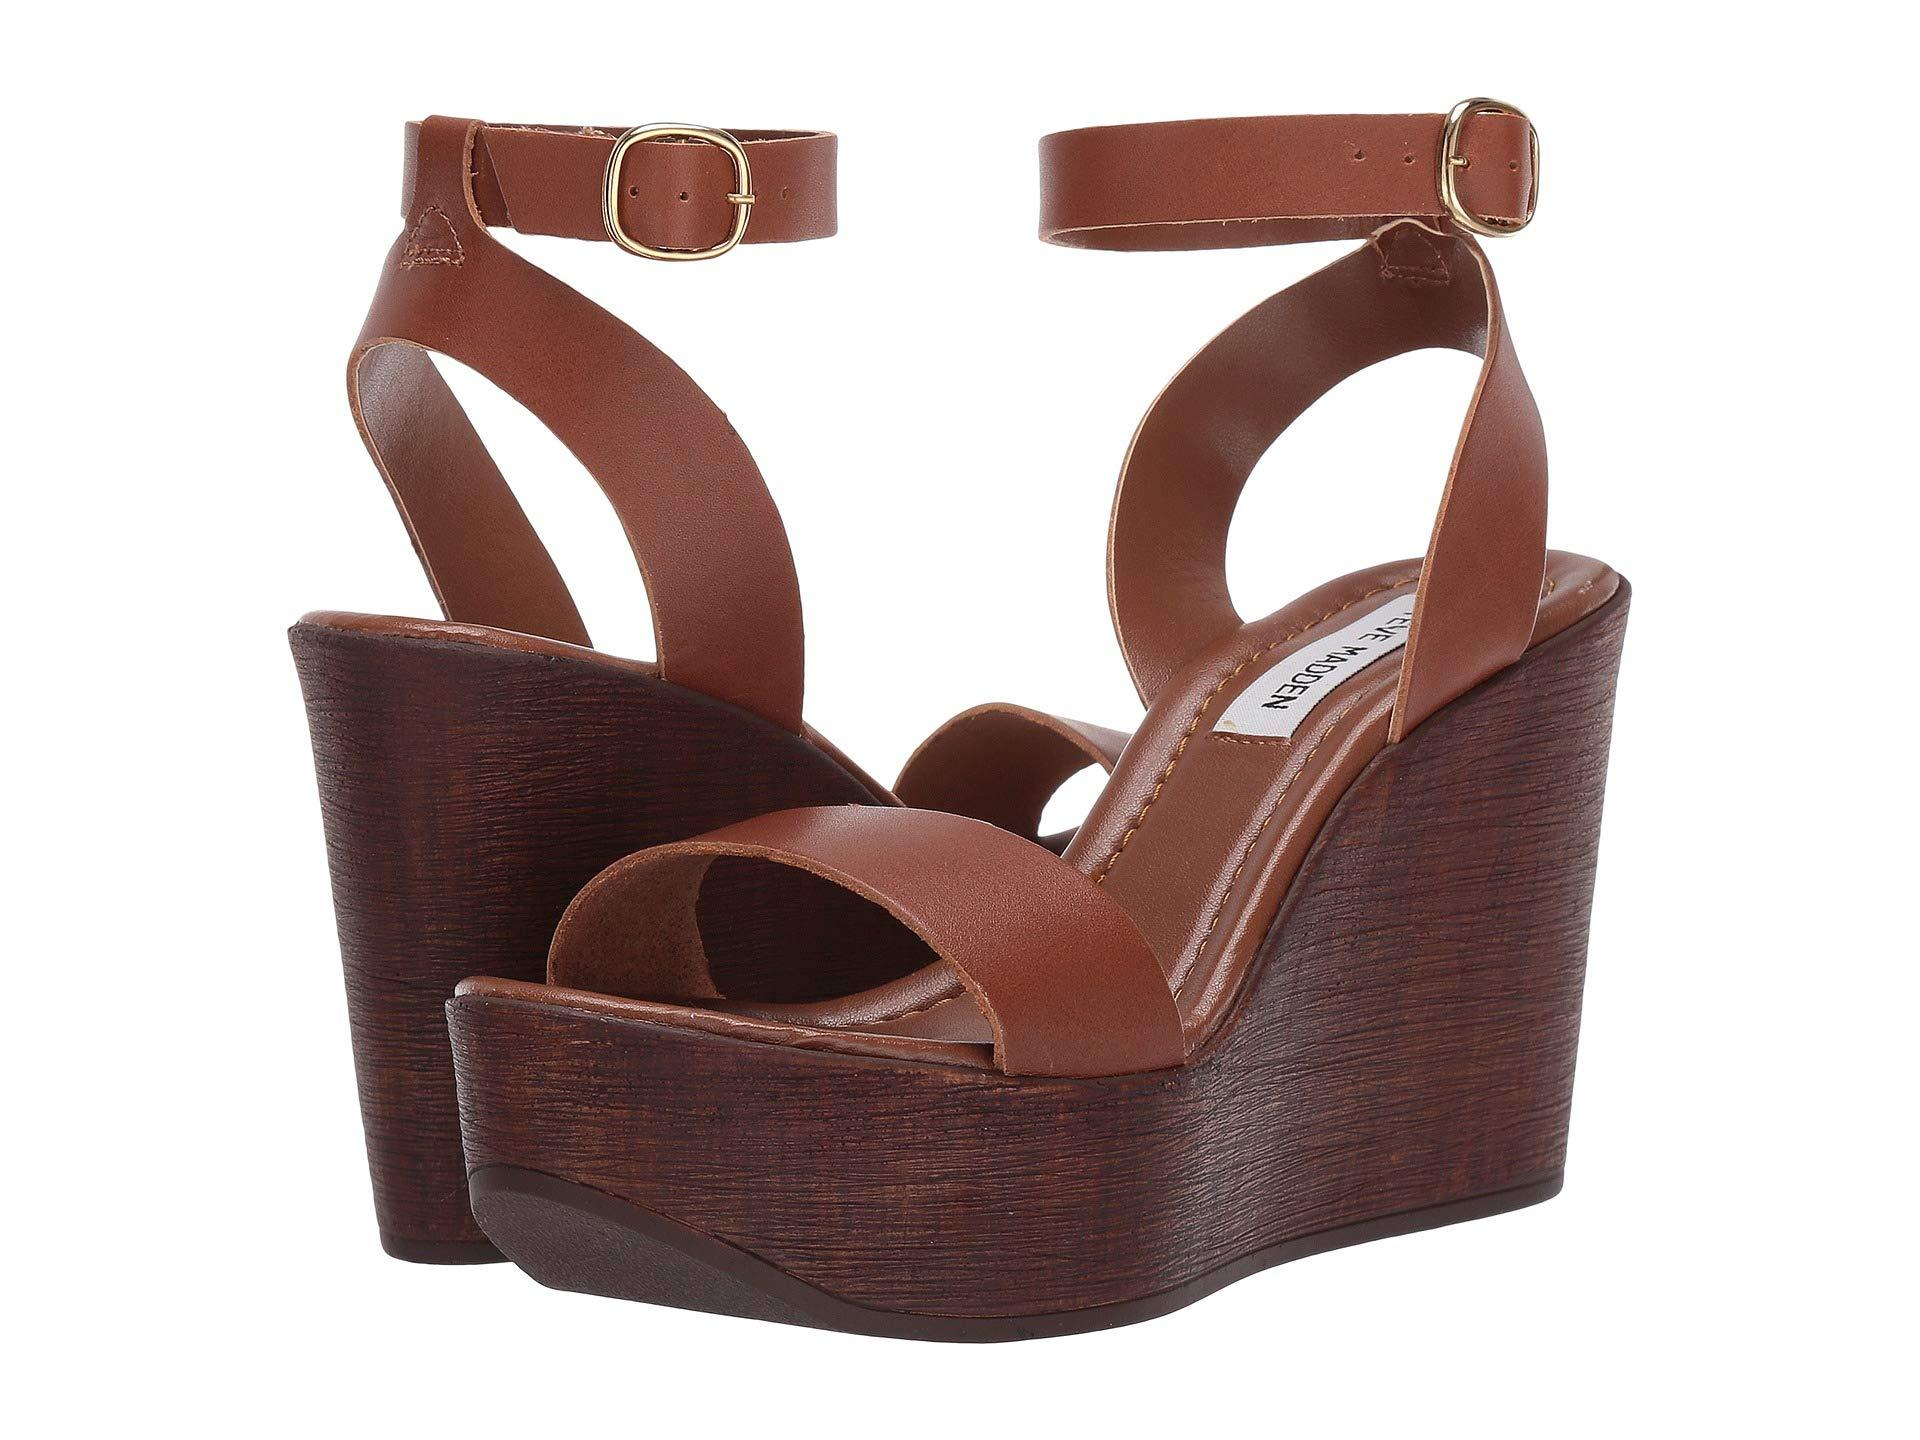 b17c2e631ae7 Lyst - Steve Madden Pansy in Brown